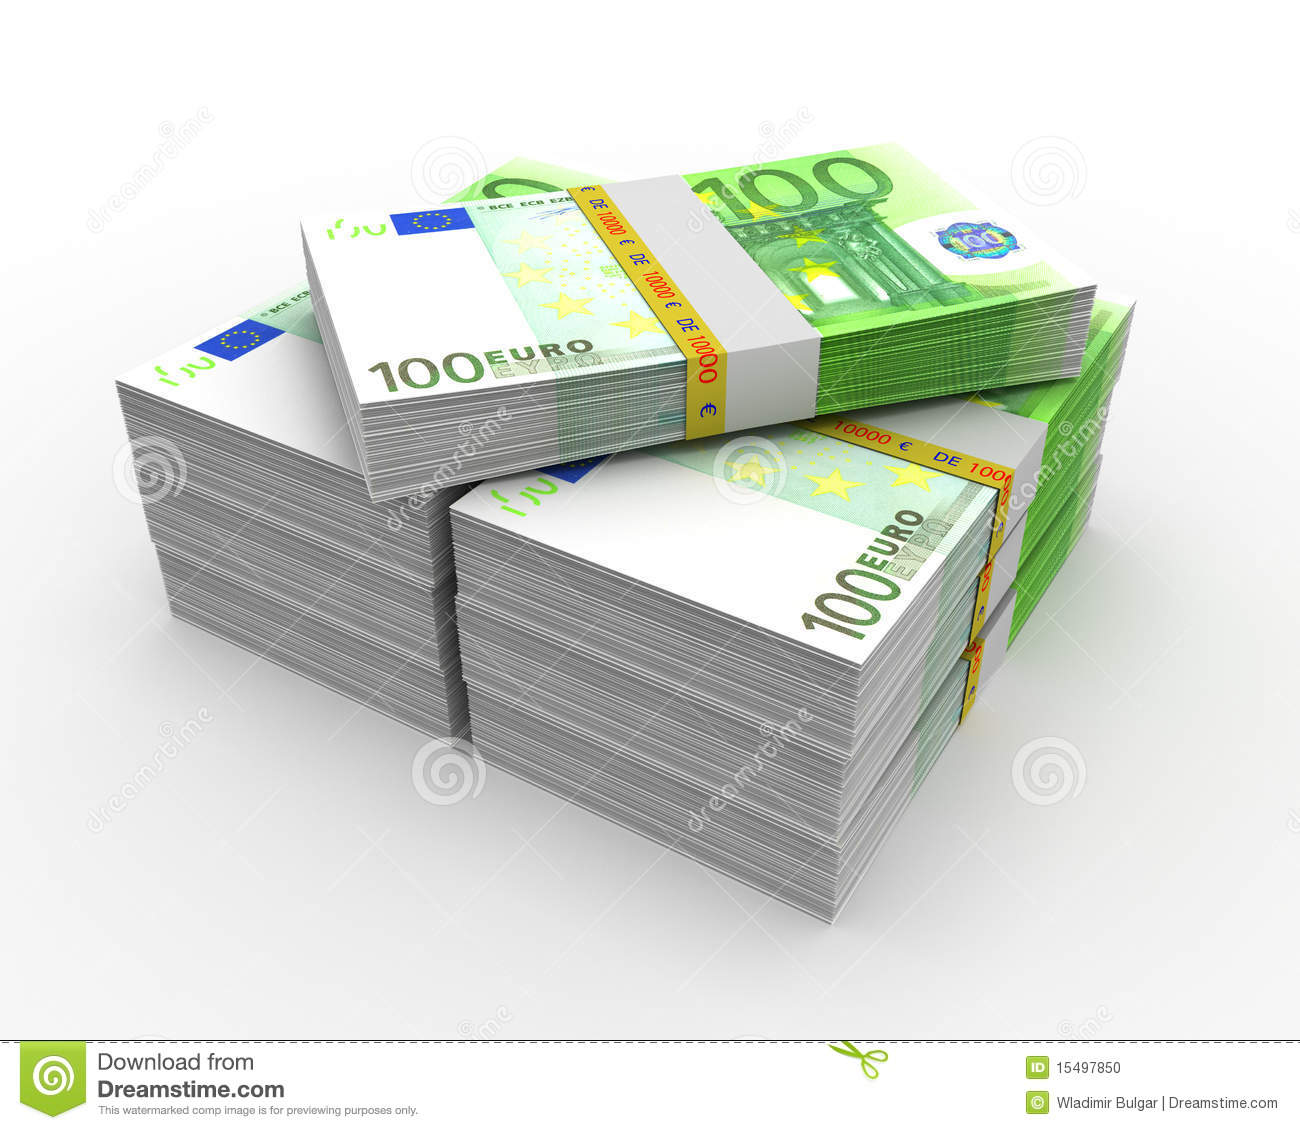 100 euro stock photo image 15497850 for Canape a 100 euros